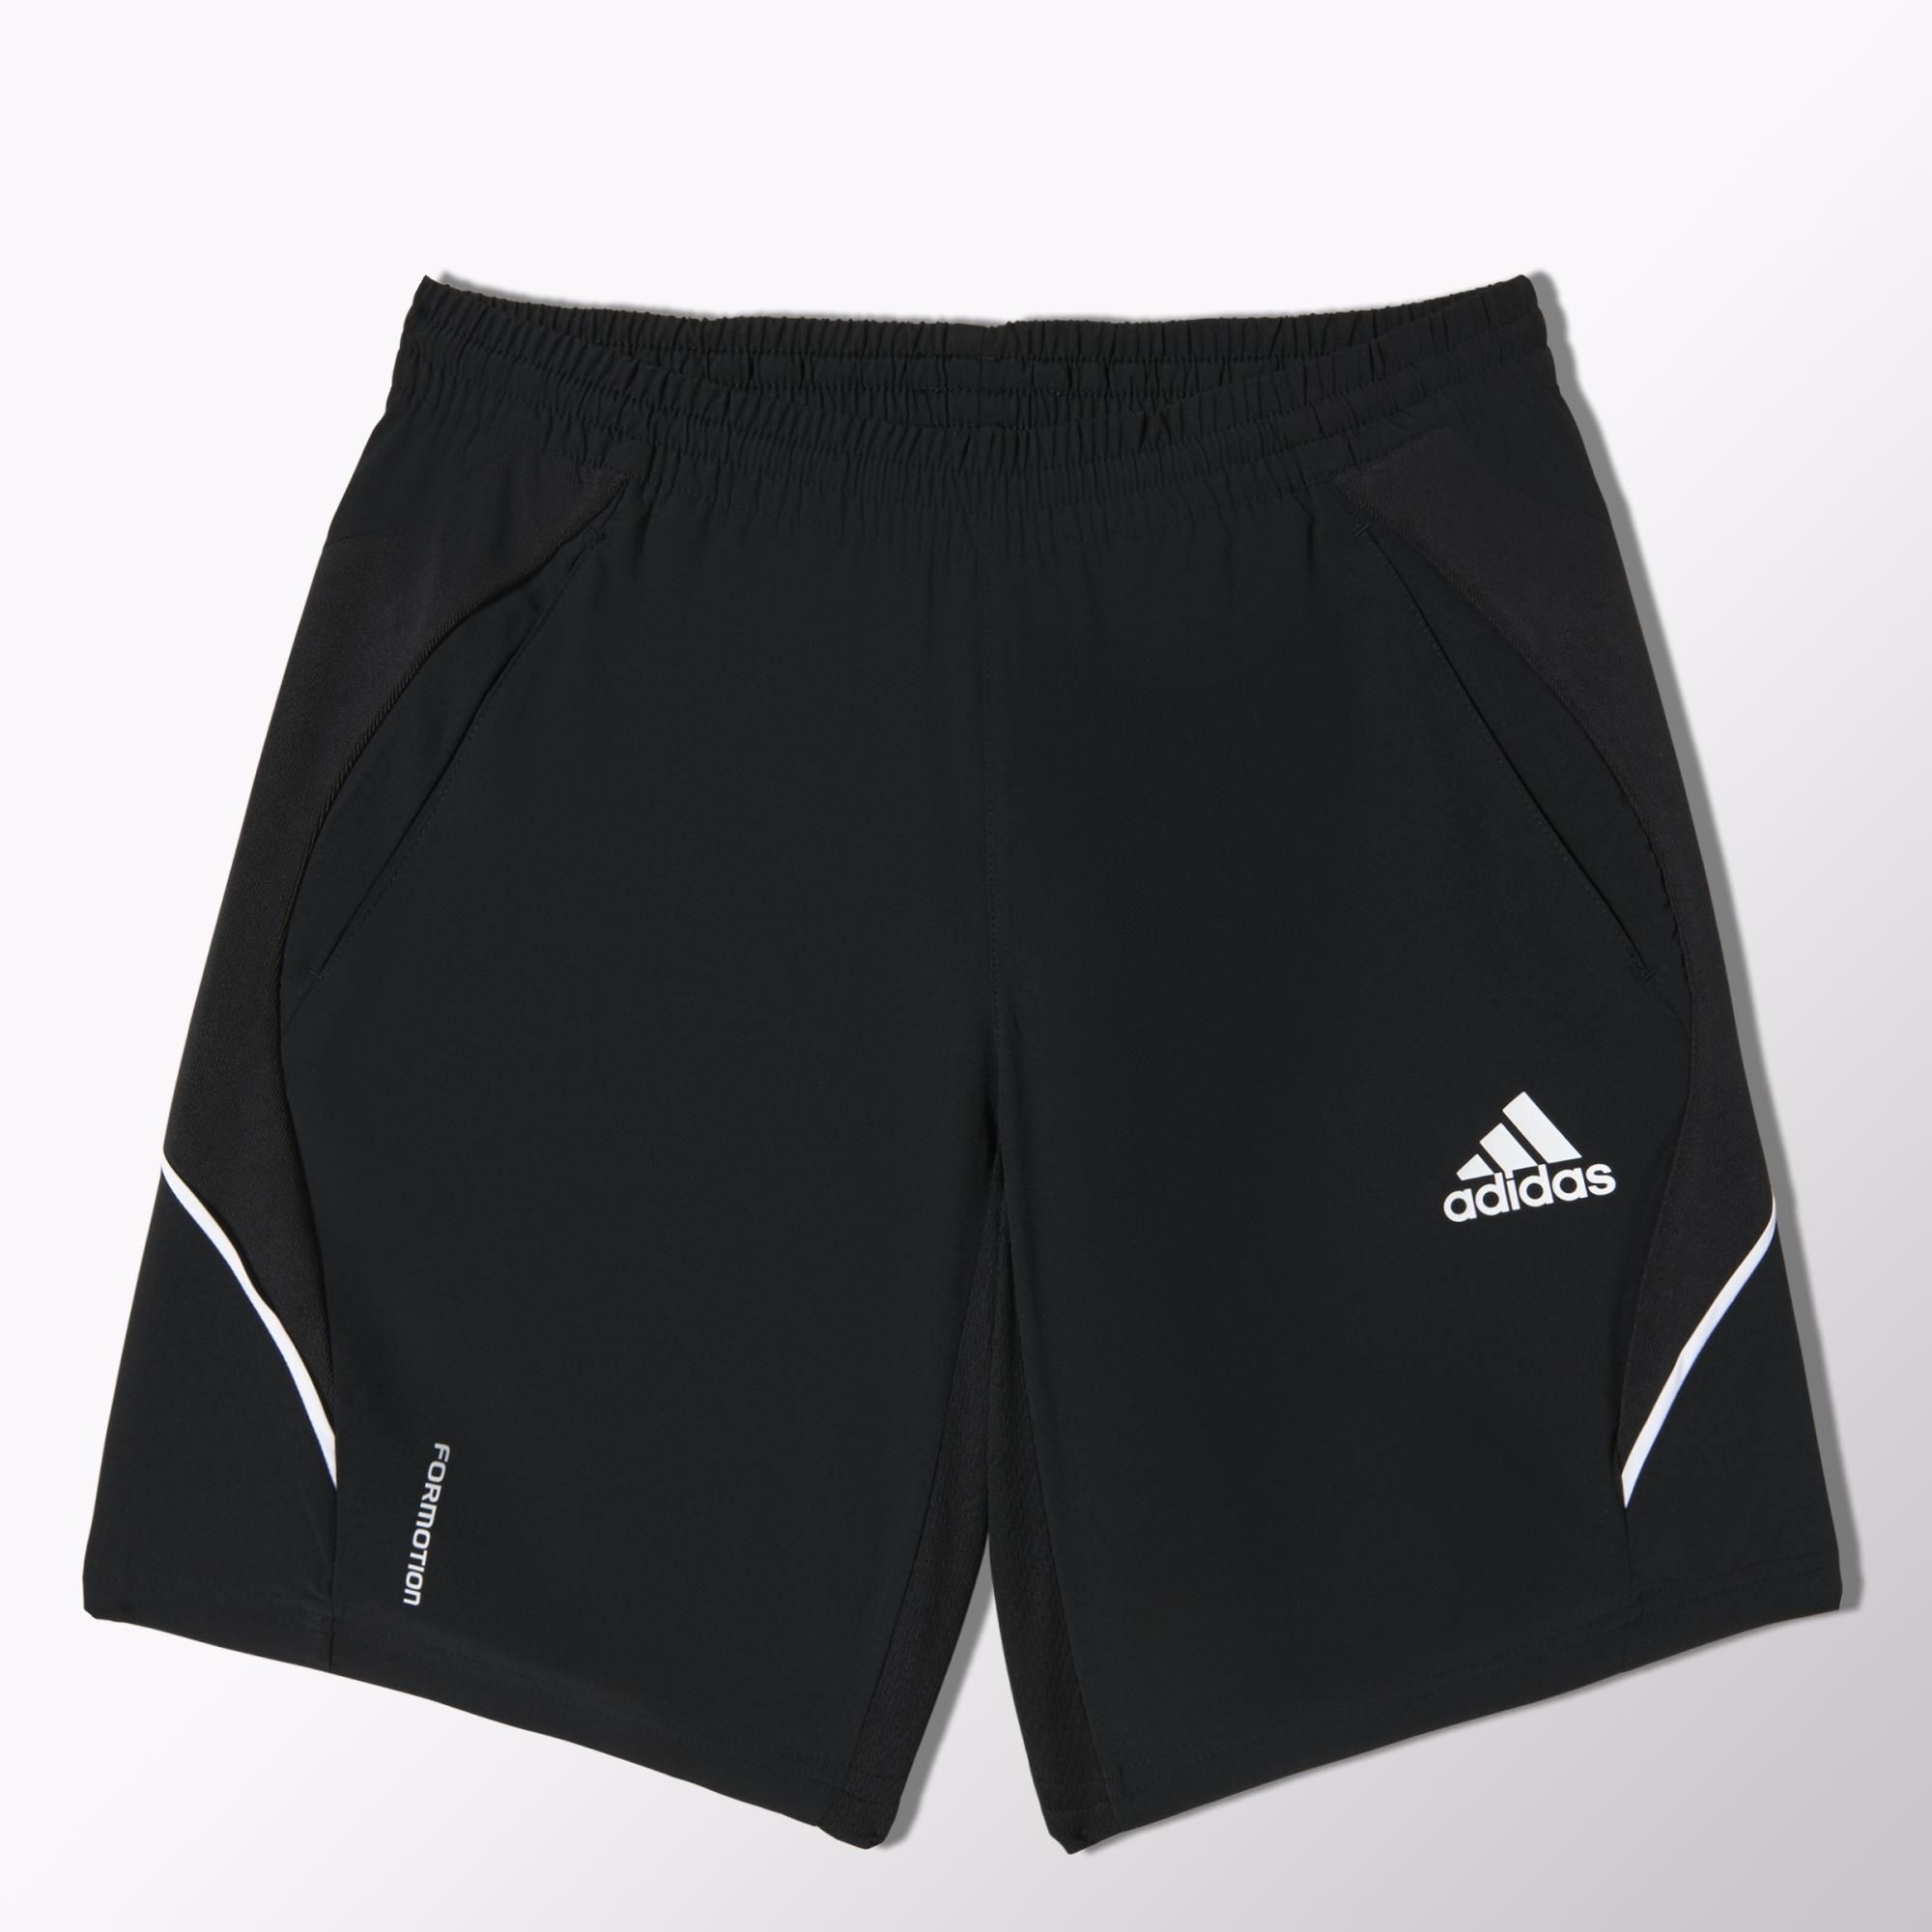 catch casual shoes ever popular Badminton Shorts | adidas Badminton | Sports | Badminton ...